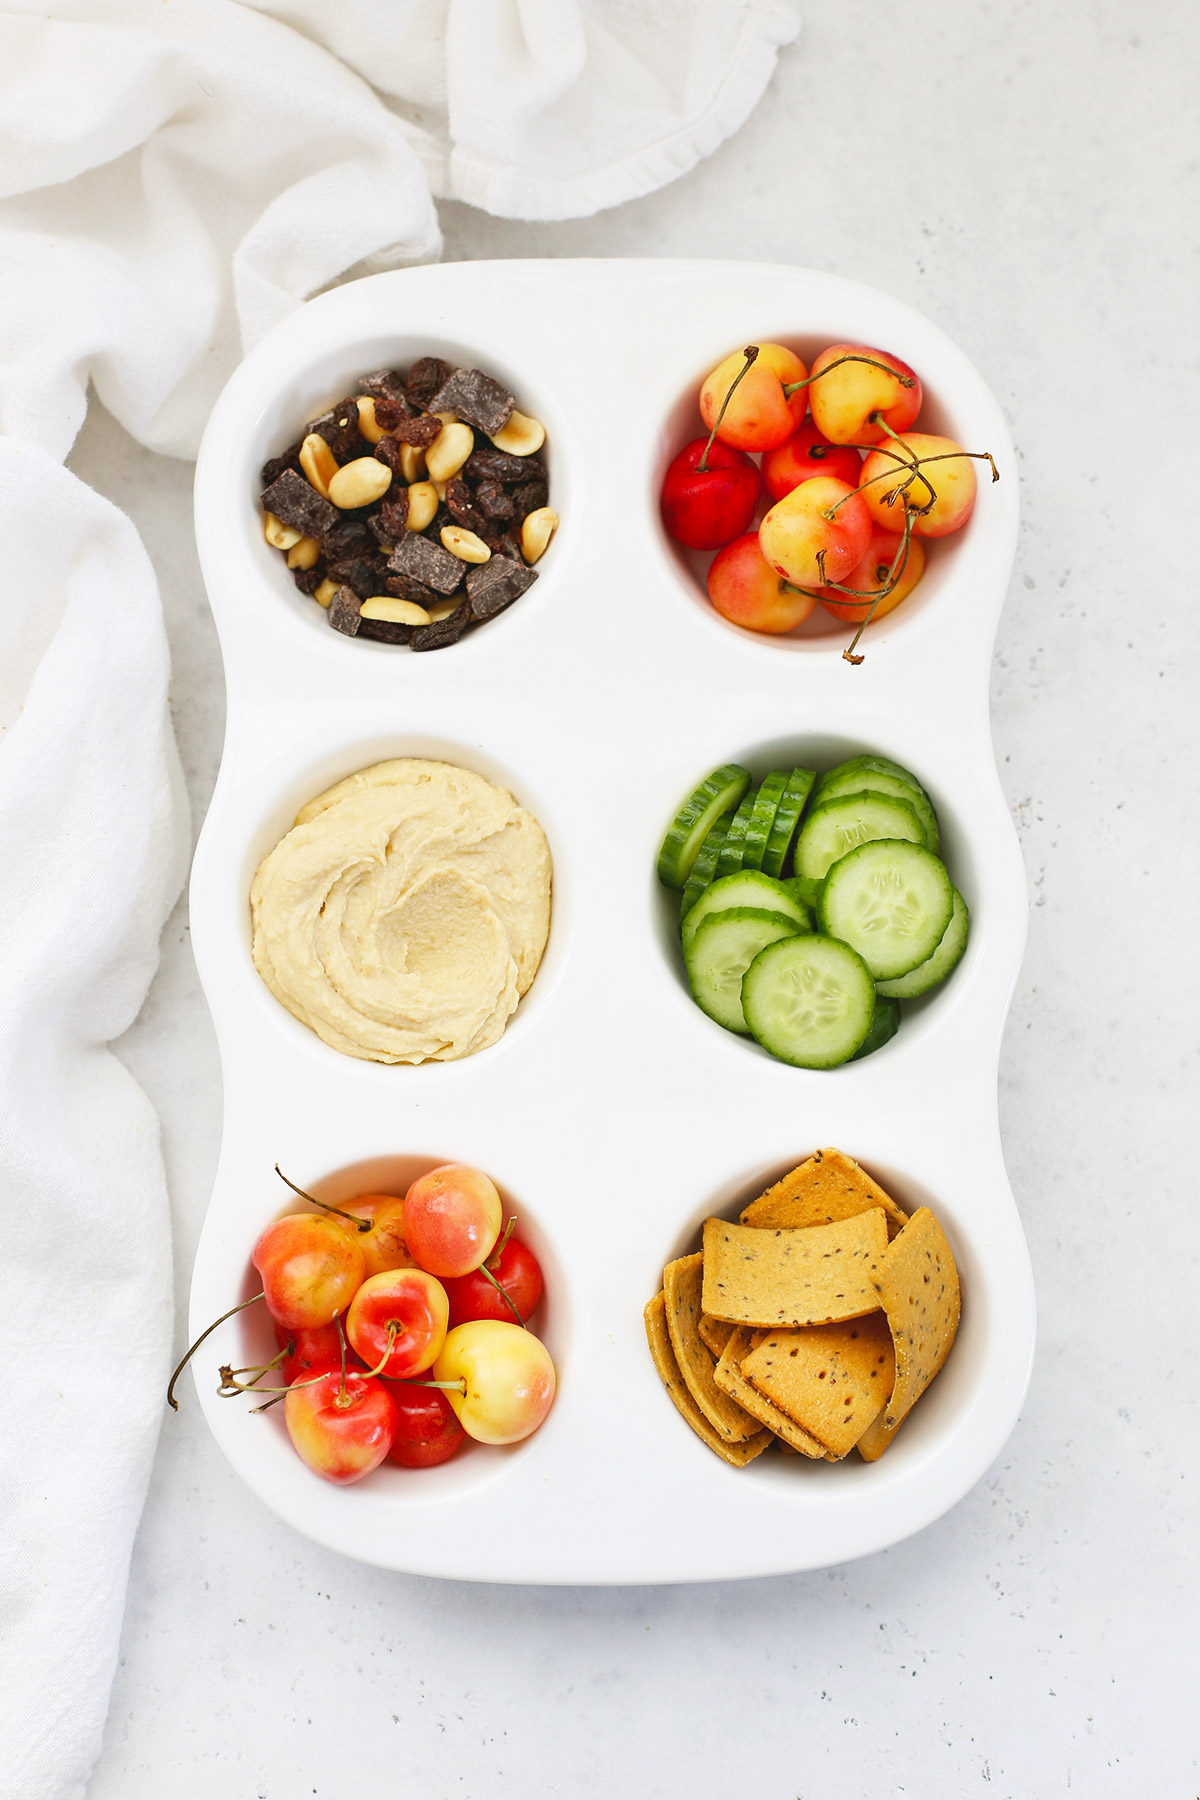 Muffin Tin Snack Tray for Kids with Trail Mix, Rainier Cherries, Hummus, Cucumber Slices, and Gluten-Free Crackers